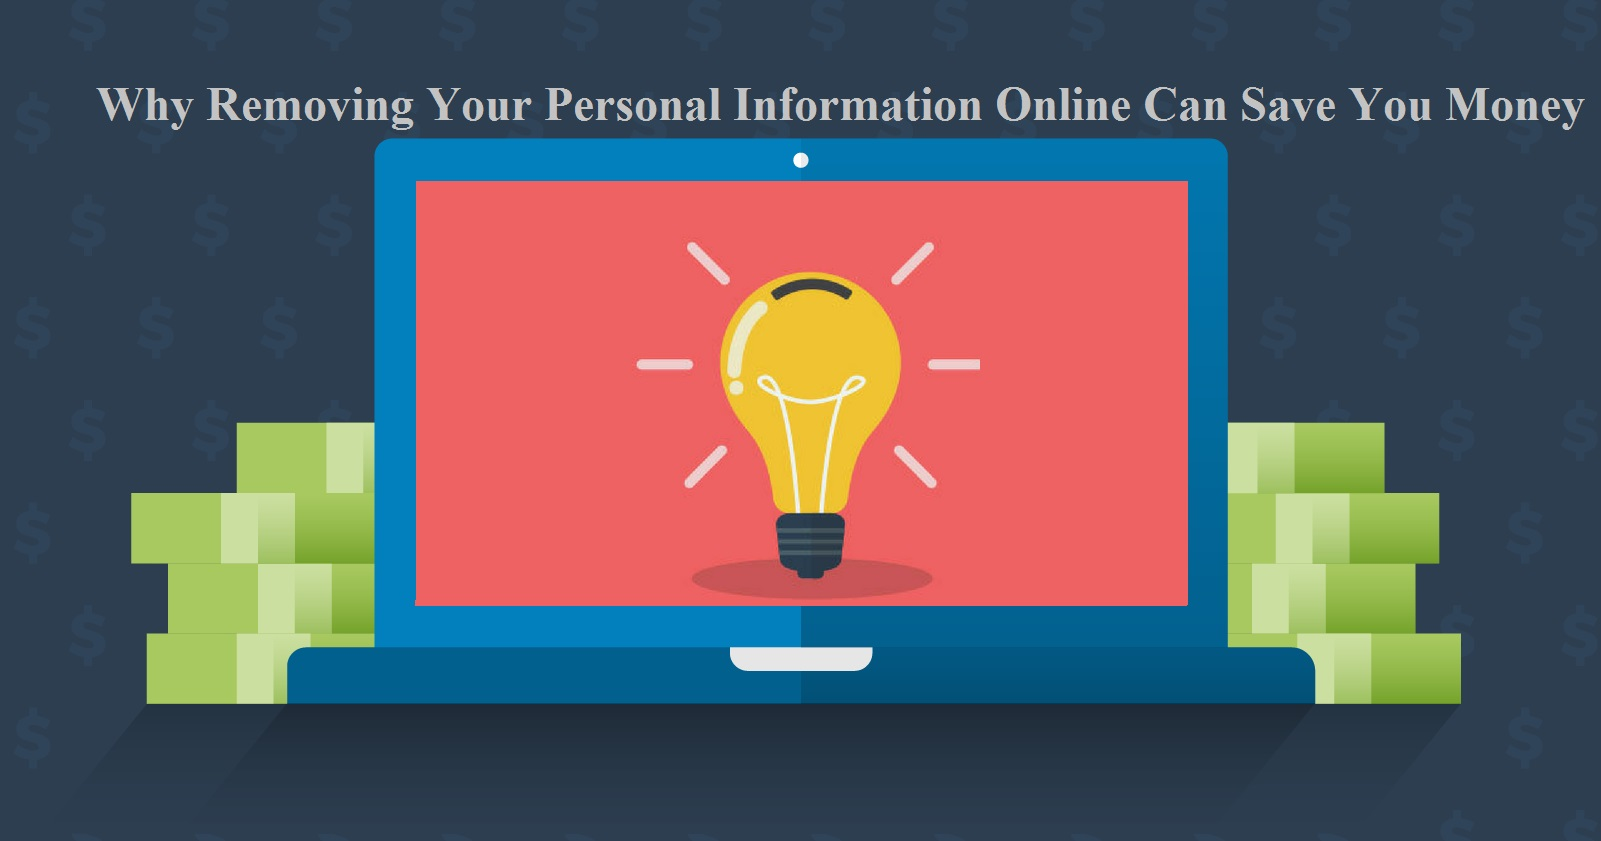 Why Removing Your Personal Information Online Can Save You Money